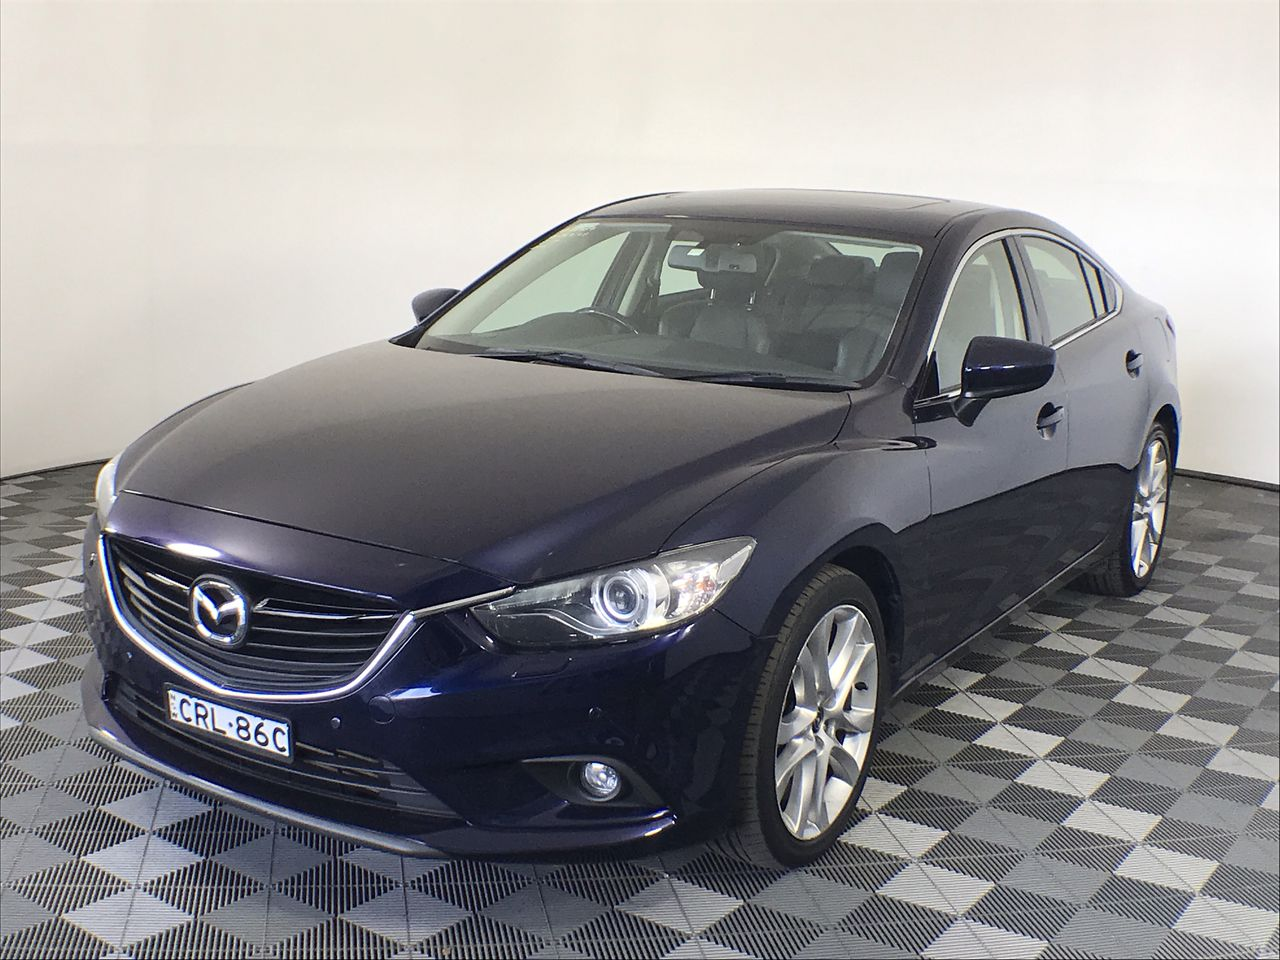 2013 Mazda 6 GT GJ Turbo Diesel Automatic Sedan 80,131km